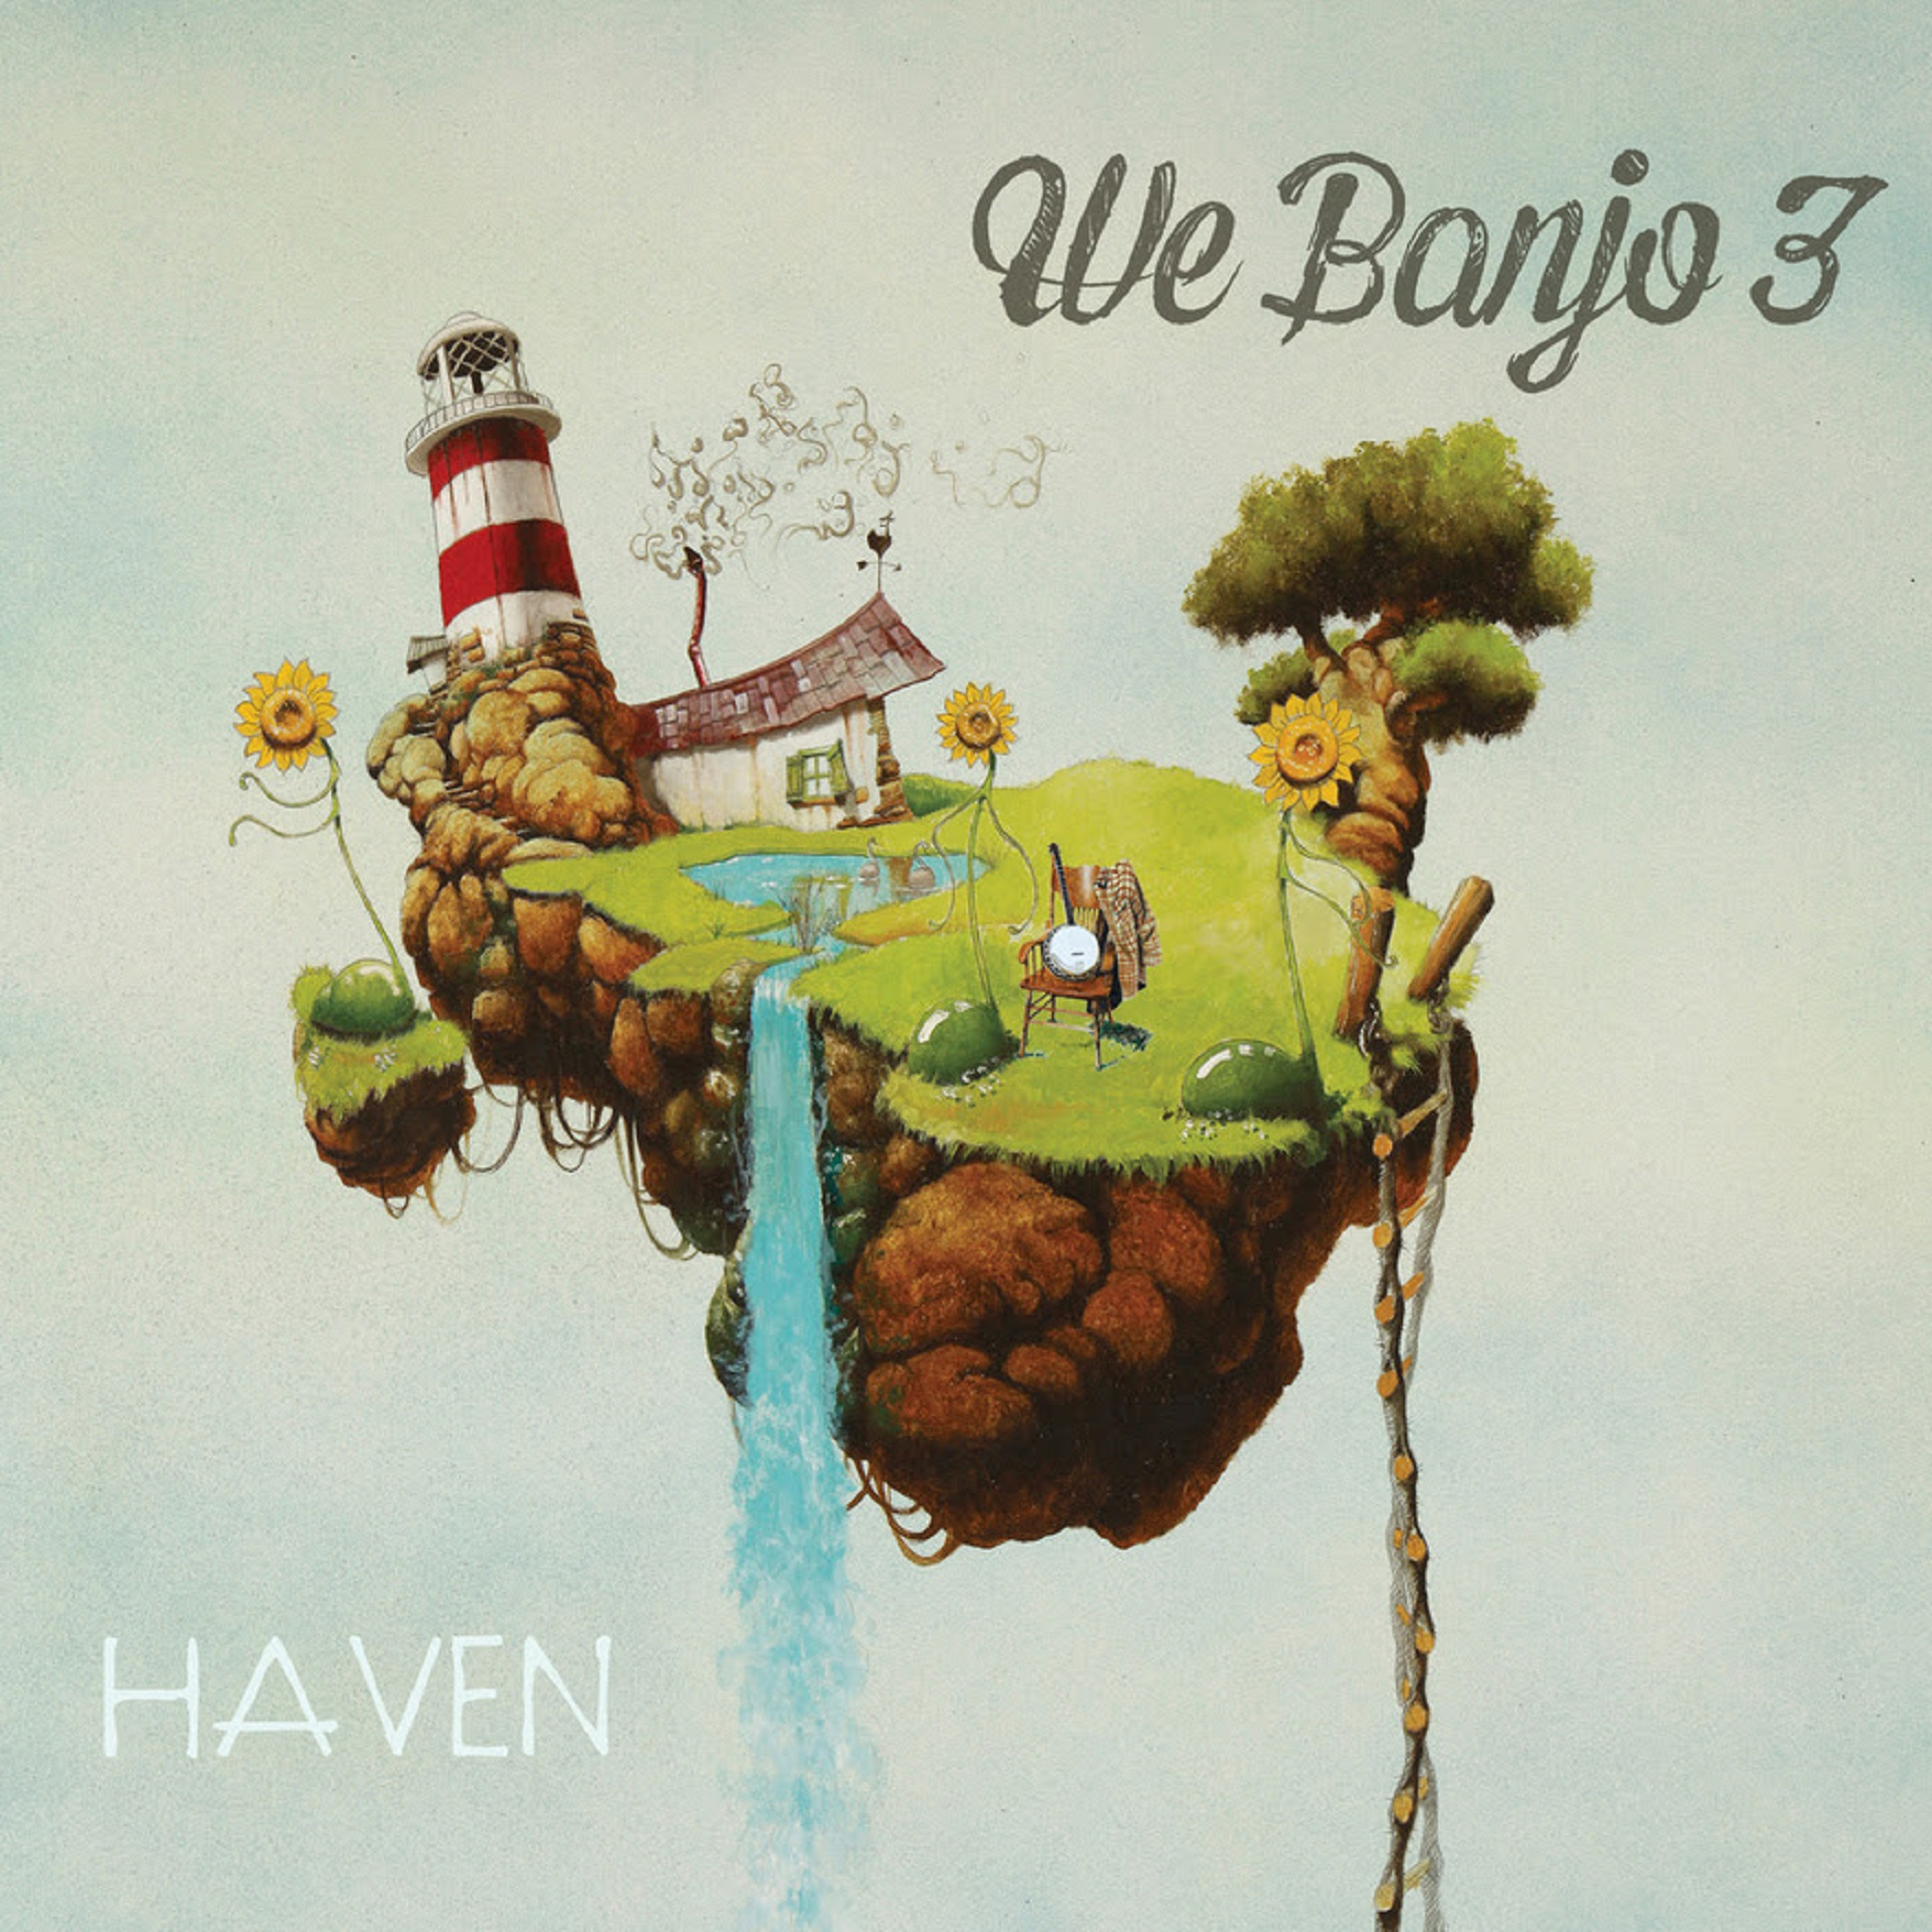 WE BANJO 3 announces release of HAVEN on 7/27